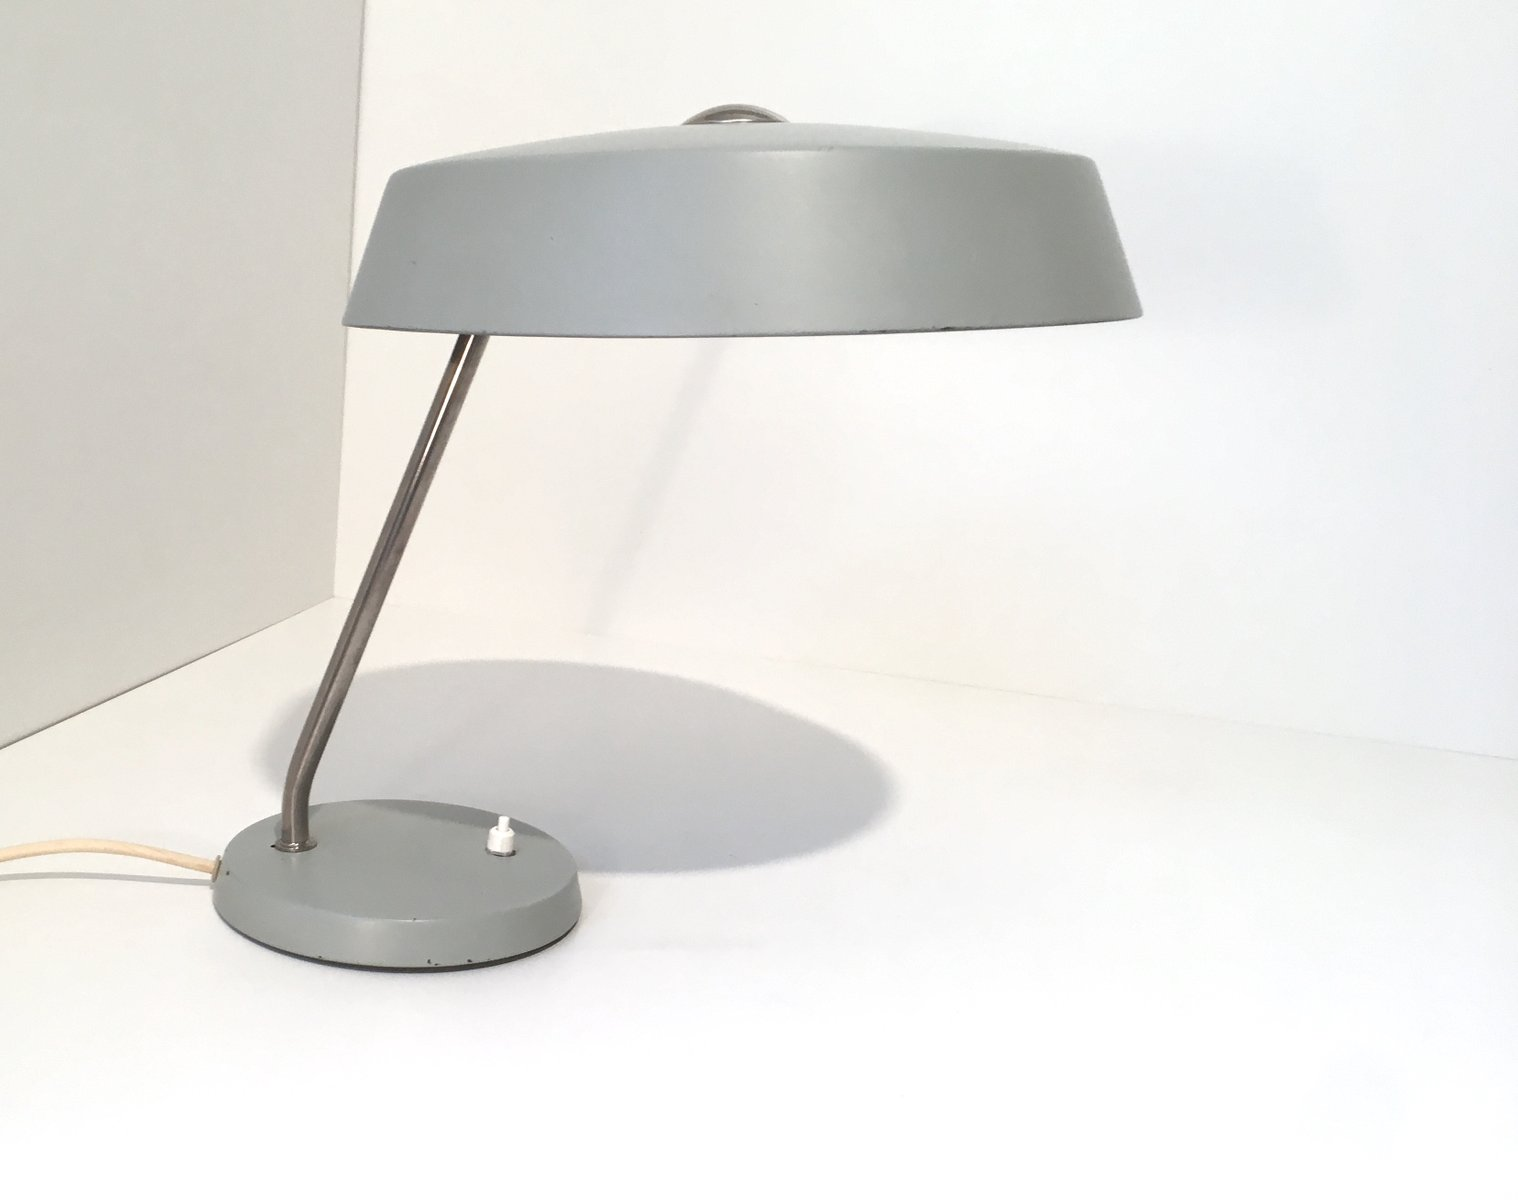 Gray bauhaus table lamp 1960s for sale at pamono gray bauhaus table lamp 1960s aloadofball